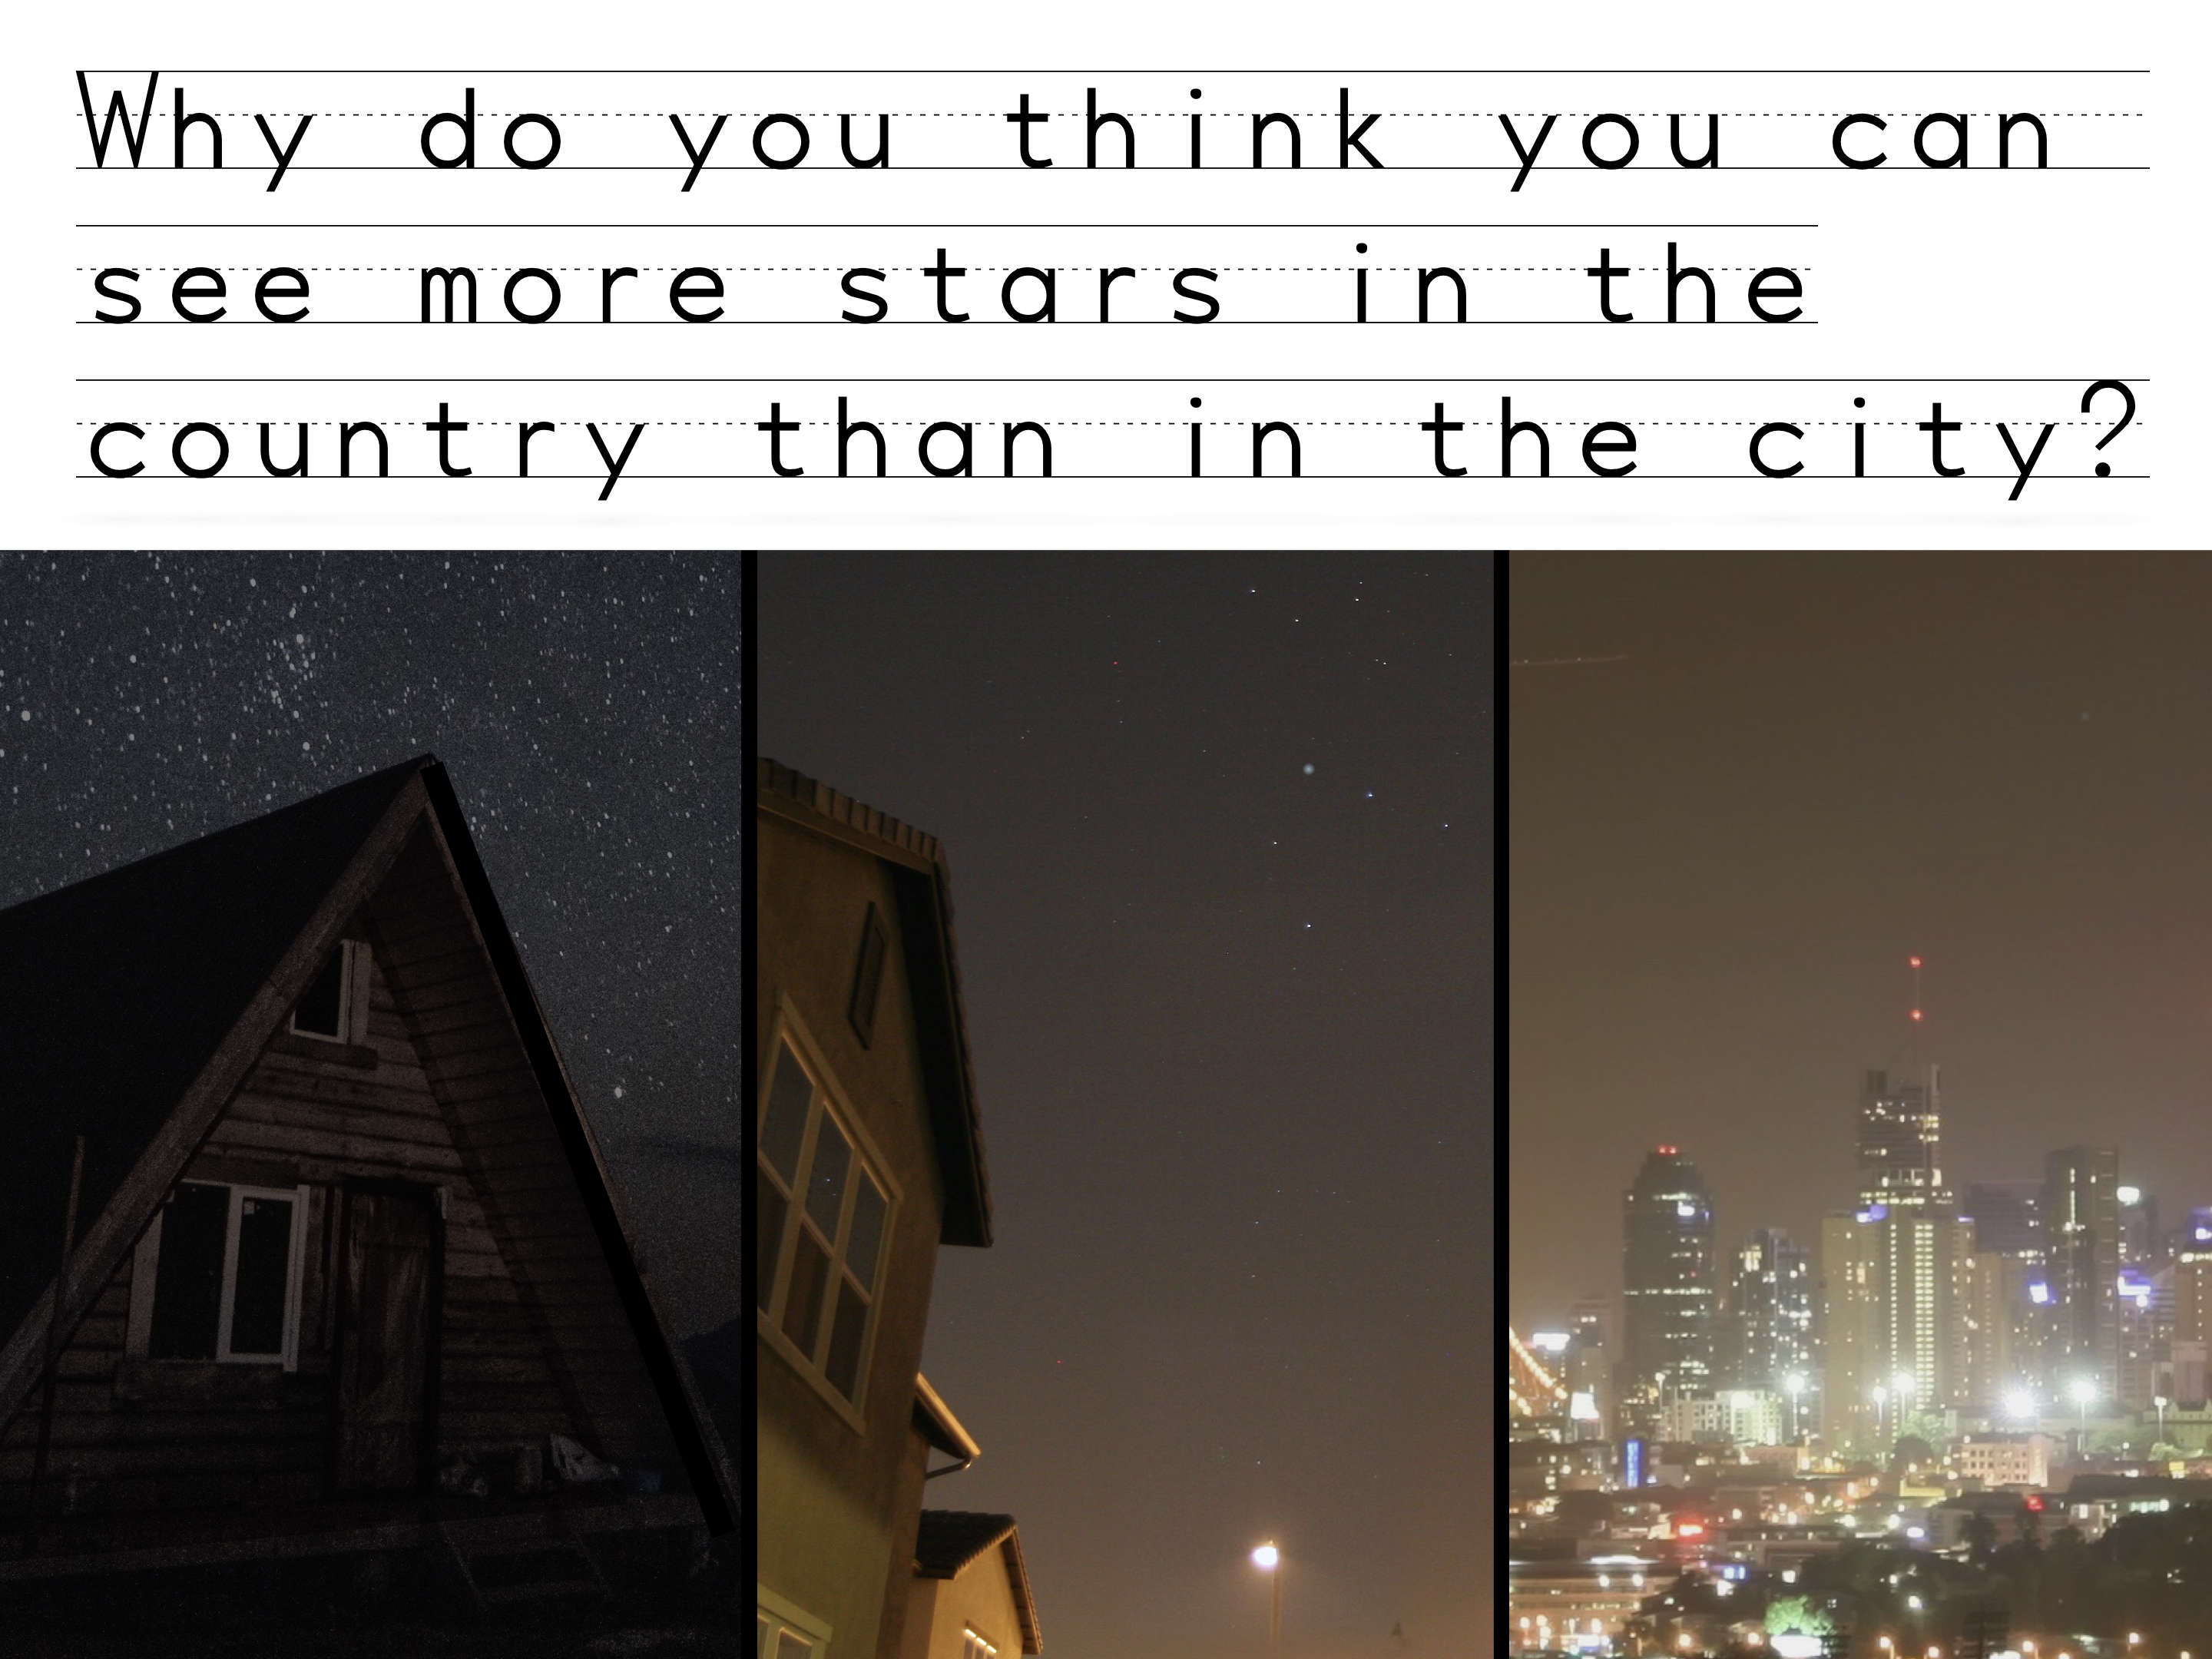 Stars in the country vs city